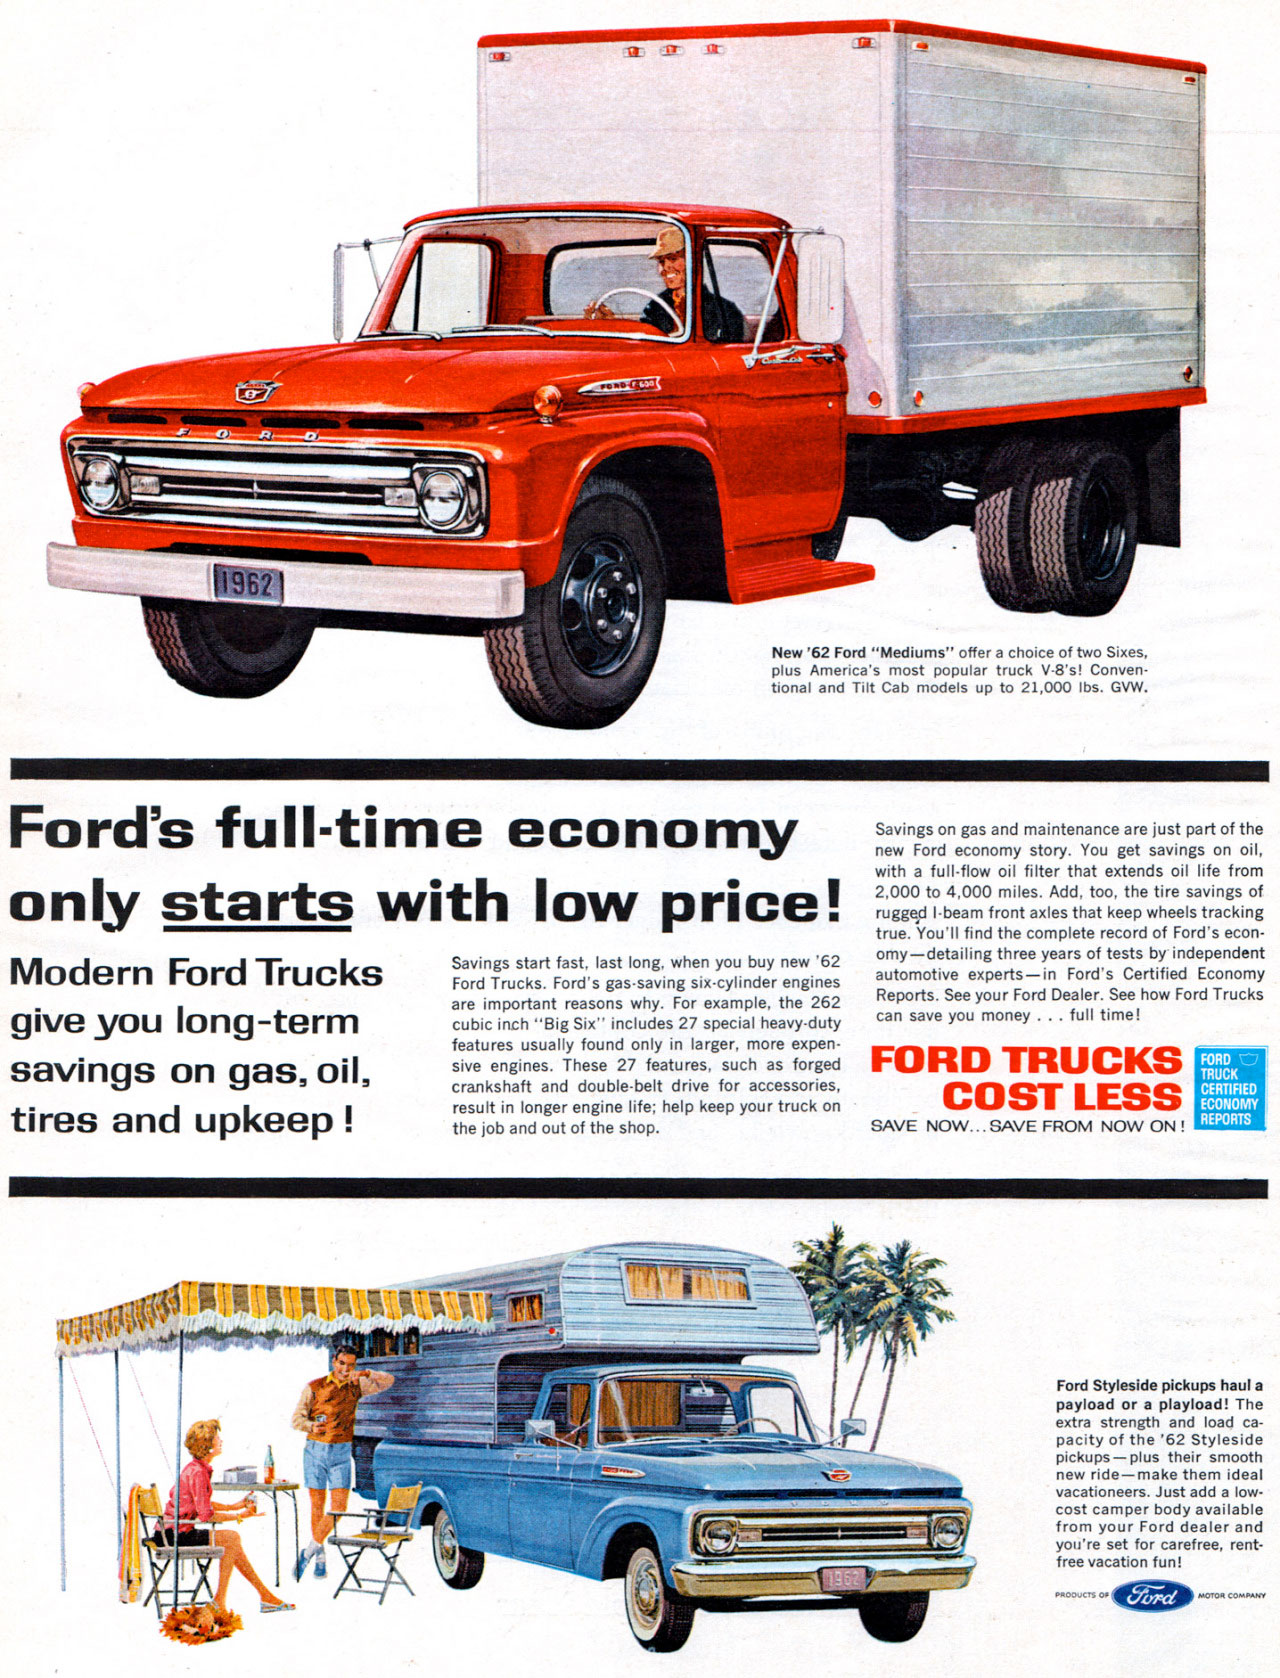 New '62 Ford ''Mediums'' offer a choice of two Sixes. plus America's most popular truck V-8's! Conven-tional and Tilt Cab models up to 21,000 lbs. GVW.  Ford's full-time economy only starts with low price!  Modern Ford Trucks give you long-term savings on gas, oil, tires and upkeep !  Savings start If last long. when you buy WE 62 Ford Trucks. Ford's gas.saving •cylinder engines are important reasons why. For example, the 262 cubic inch ''Big Six'' includes 27 special heavy-duty features usually found only in larger, more expen-sive engines. These 27 features. such as forged crankshaft and double-belt drive for accessories, result in longer engine life; help keep your truck on the job and out of the shop.  Savings on gas and maintenance are just part of the new Ford economy story. You get savings on oil, with a full-flow oil filter that extends oil life from 2,000 to 4,000 miles. Add, too, the tire savings of rugged I-beam front axles that keep wheels tracking true. You'll find the complete record of Ford's econ-omy—detailing the years of tests by independent automotive experts—in Ford's Certified Economy Reports. See your Ford Dealer. See how Ford Trucks can save you money . .. full time!  FORD TRUCKS COST LESS  SAVE NOW. SAVE FROM NOW ON !  FORD -1:1 TRUCK CERTIFIED ECONOMY REPORTS   Ford Styleside pickups haul a payload or a playload! The extra strength and load ca-pacity of the '62 Styleside pickups—plus their smooth new ride—rnake them ideal vacationeers. Just add a low-cost camper body available from your Ford dealer and you're set for carefree, rent-free vacation fun!